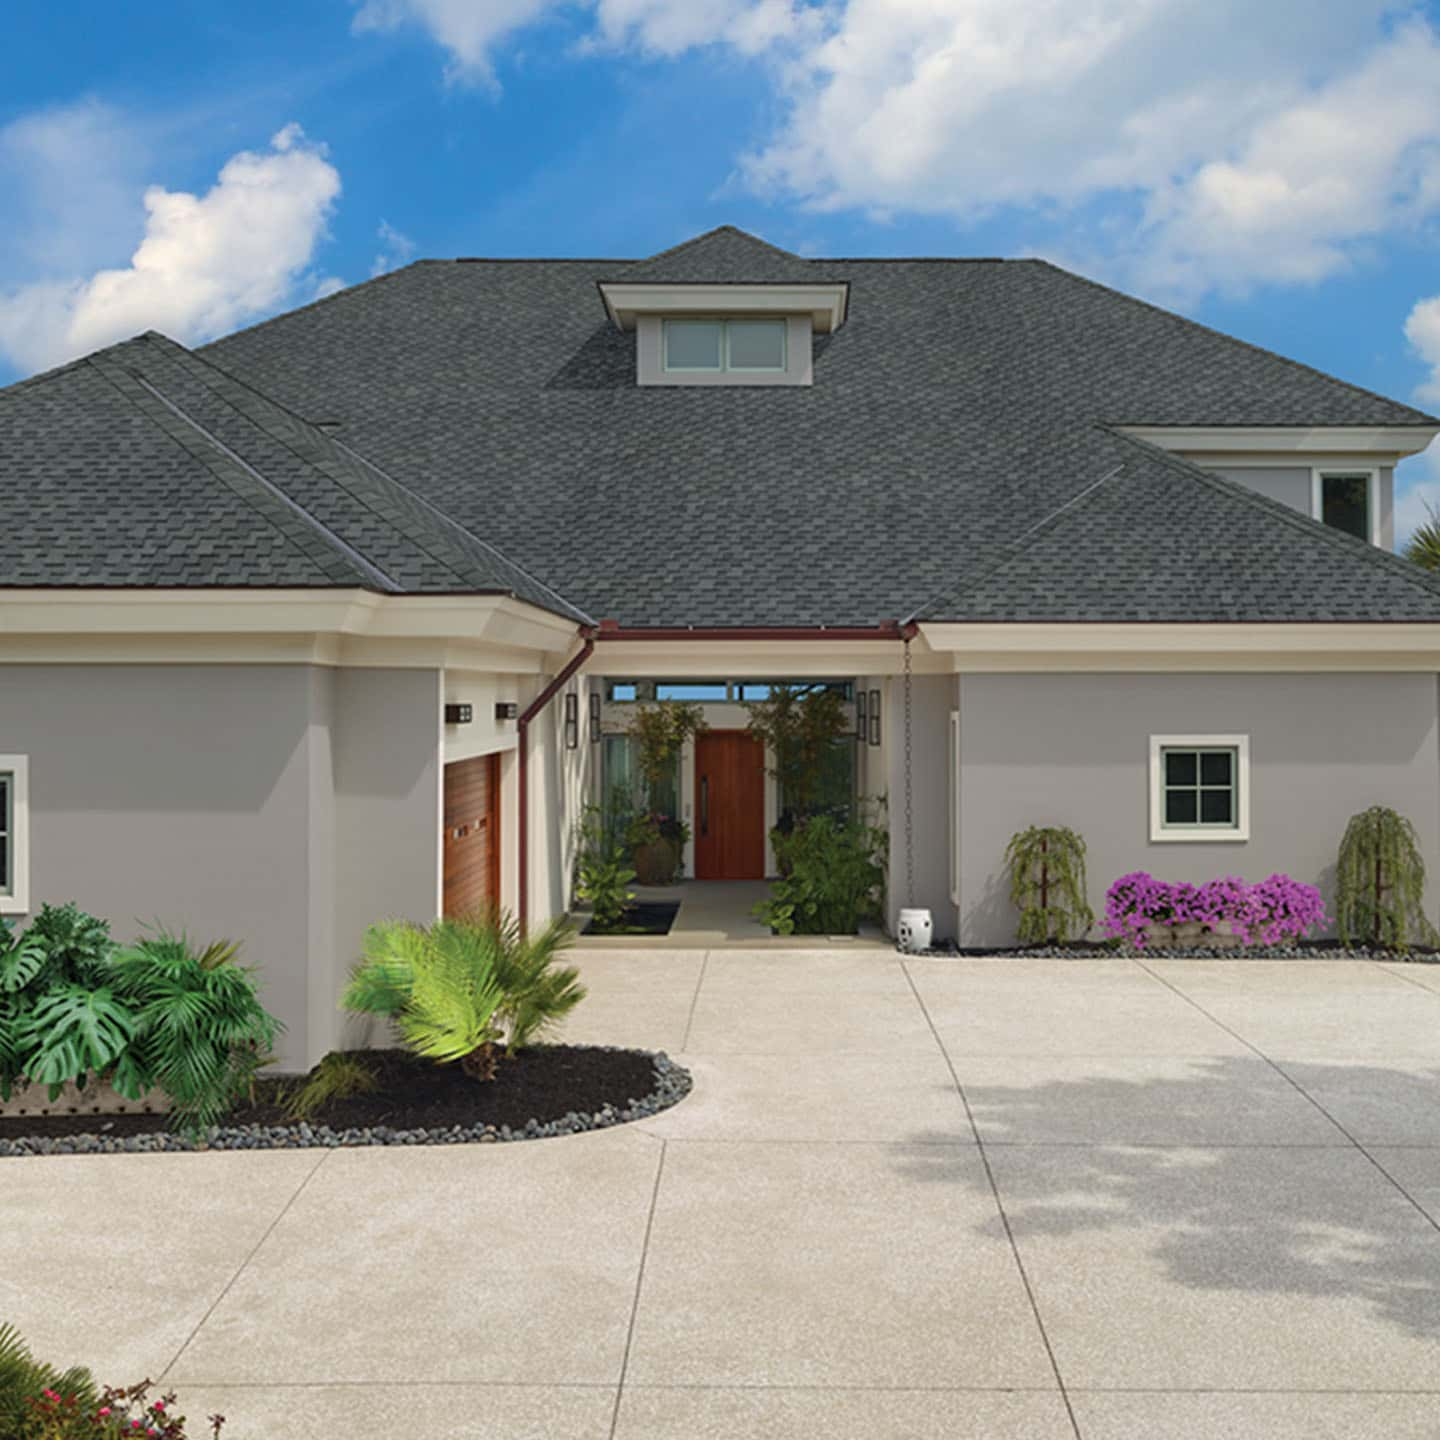 GAF Grand Sequoia Reflector Plus Charcoal Plus House